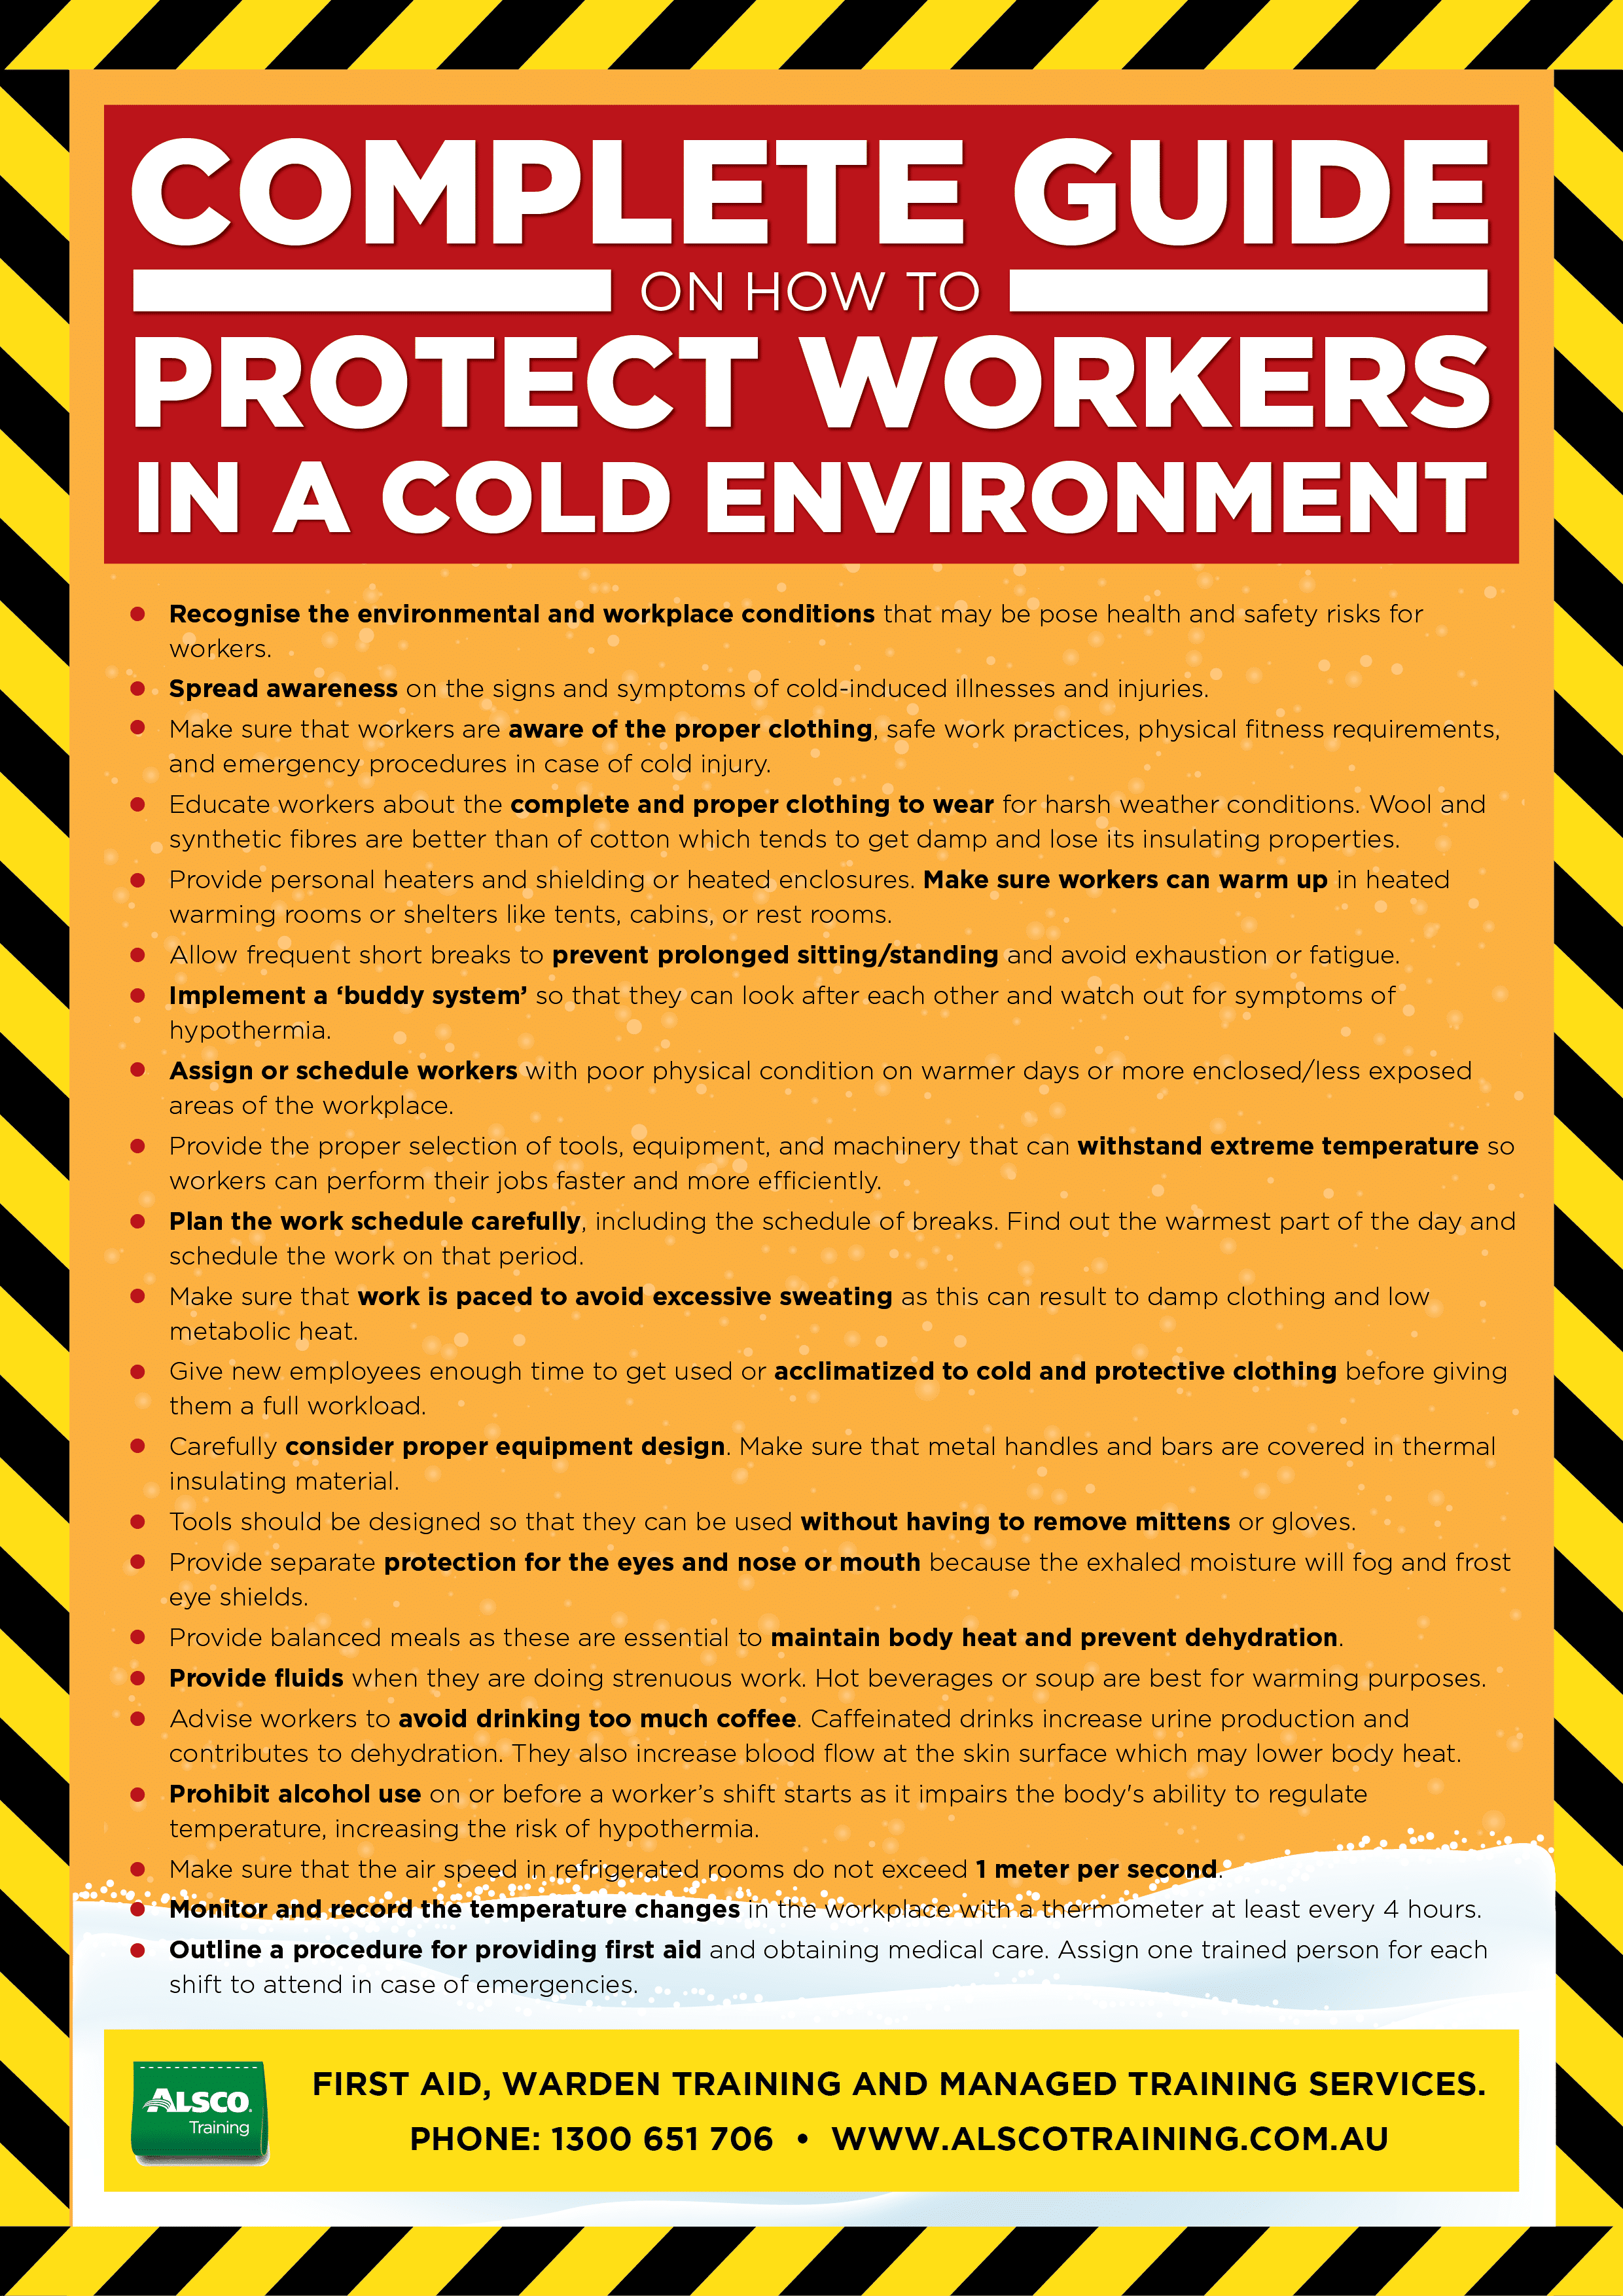 Workplace safety posters - How To Protect Workers In A Cold Environment